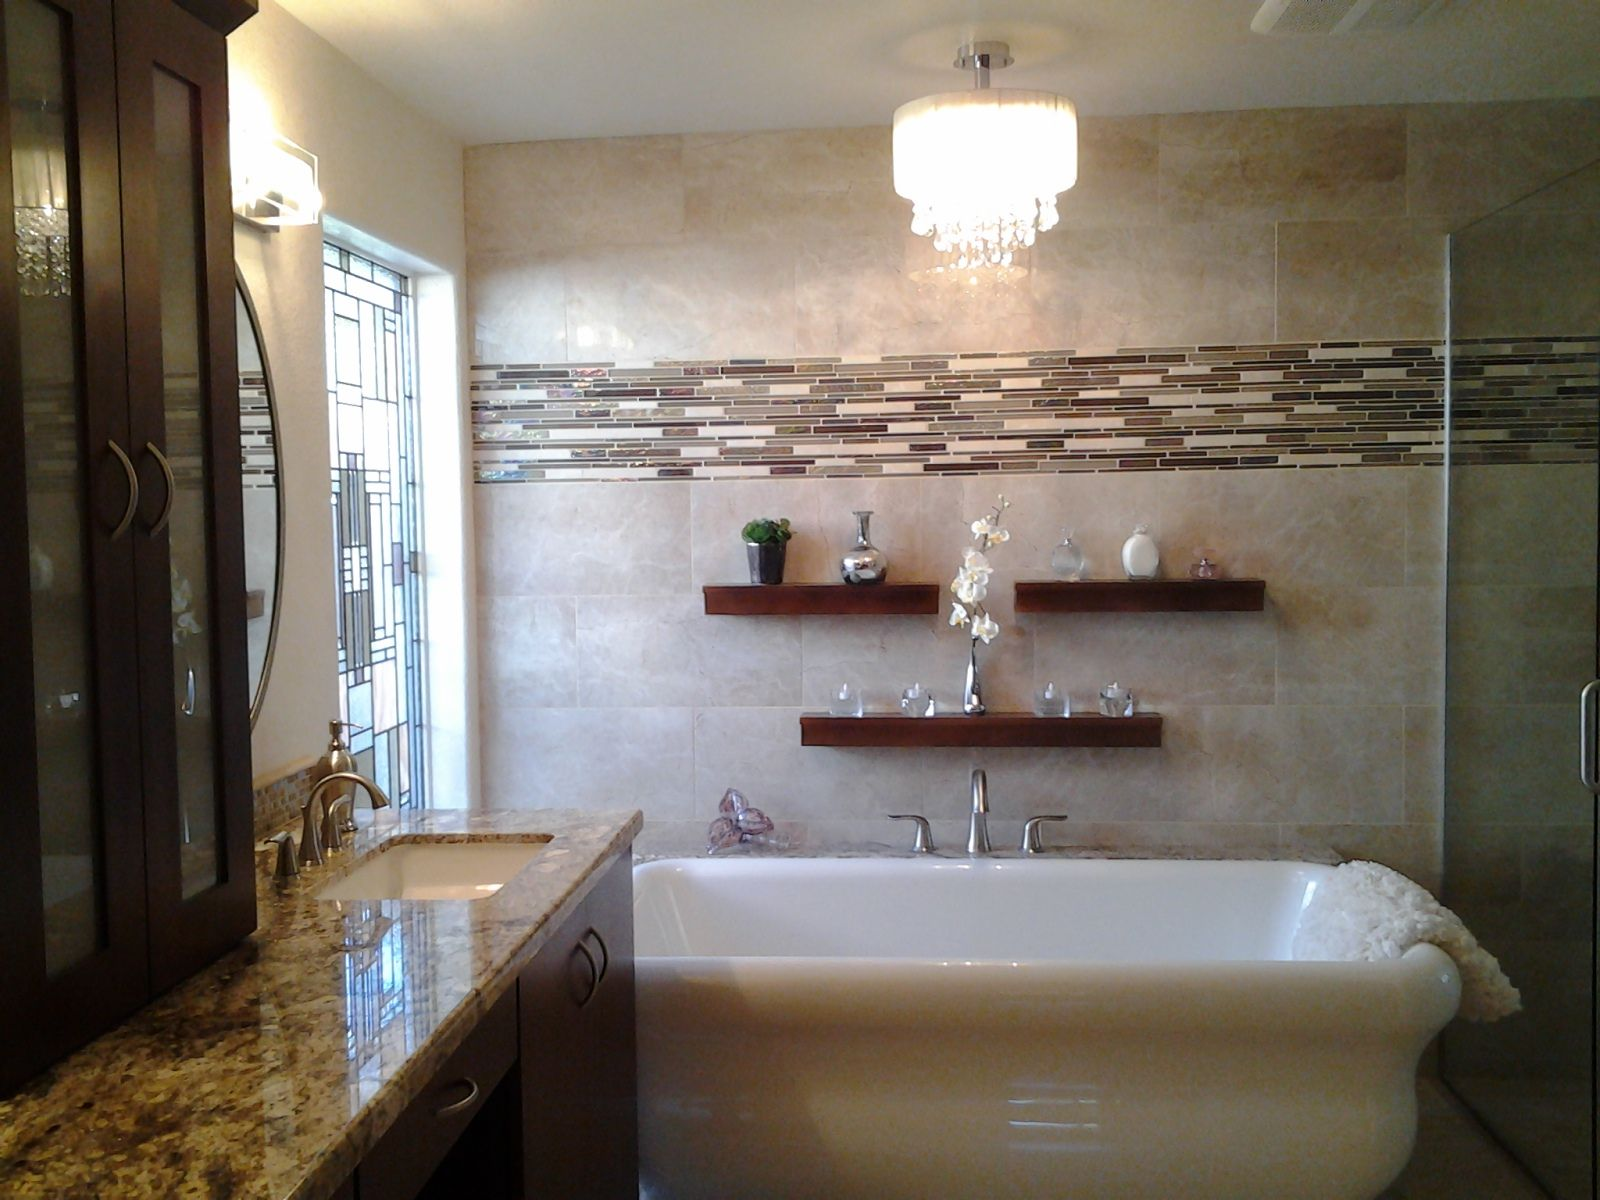 Freestanding Tub Bathroom Designs Google Search